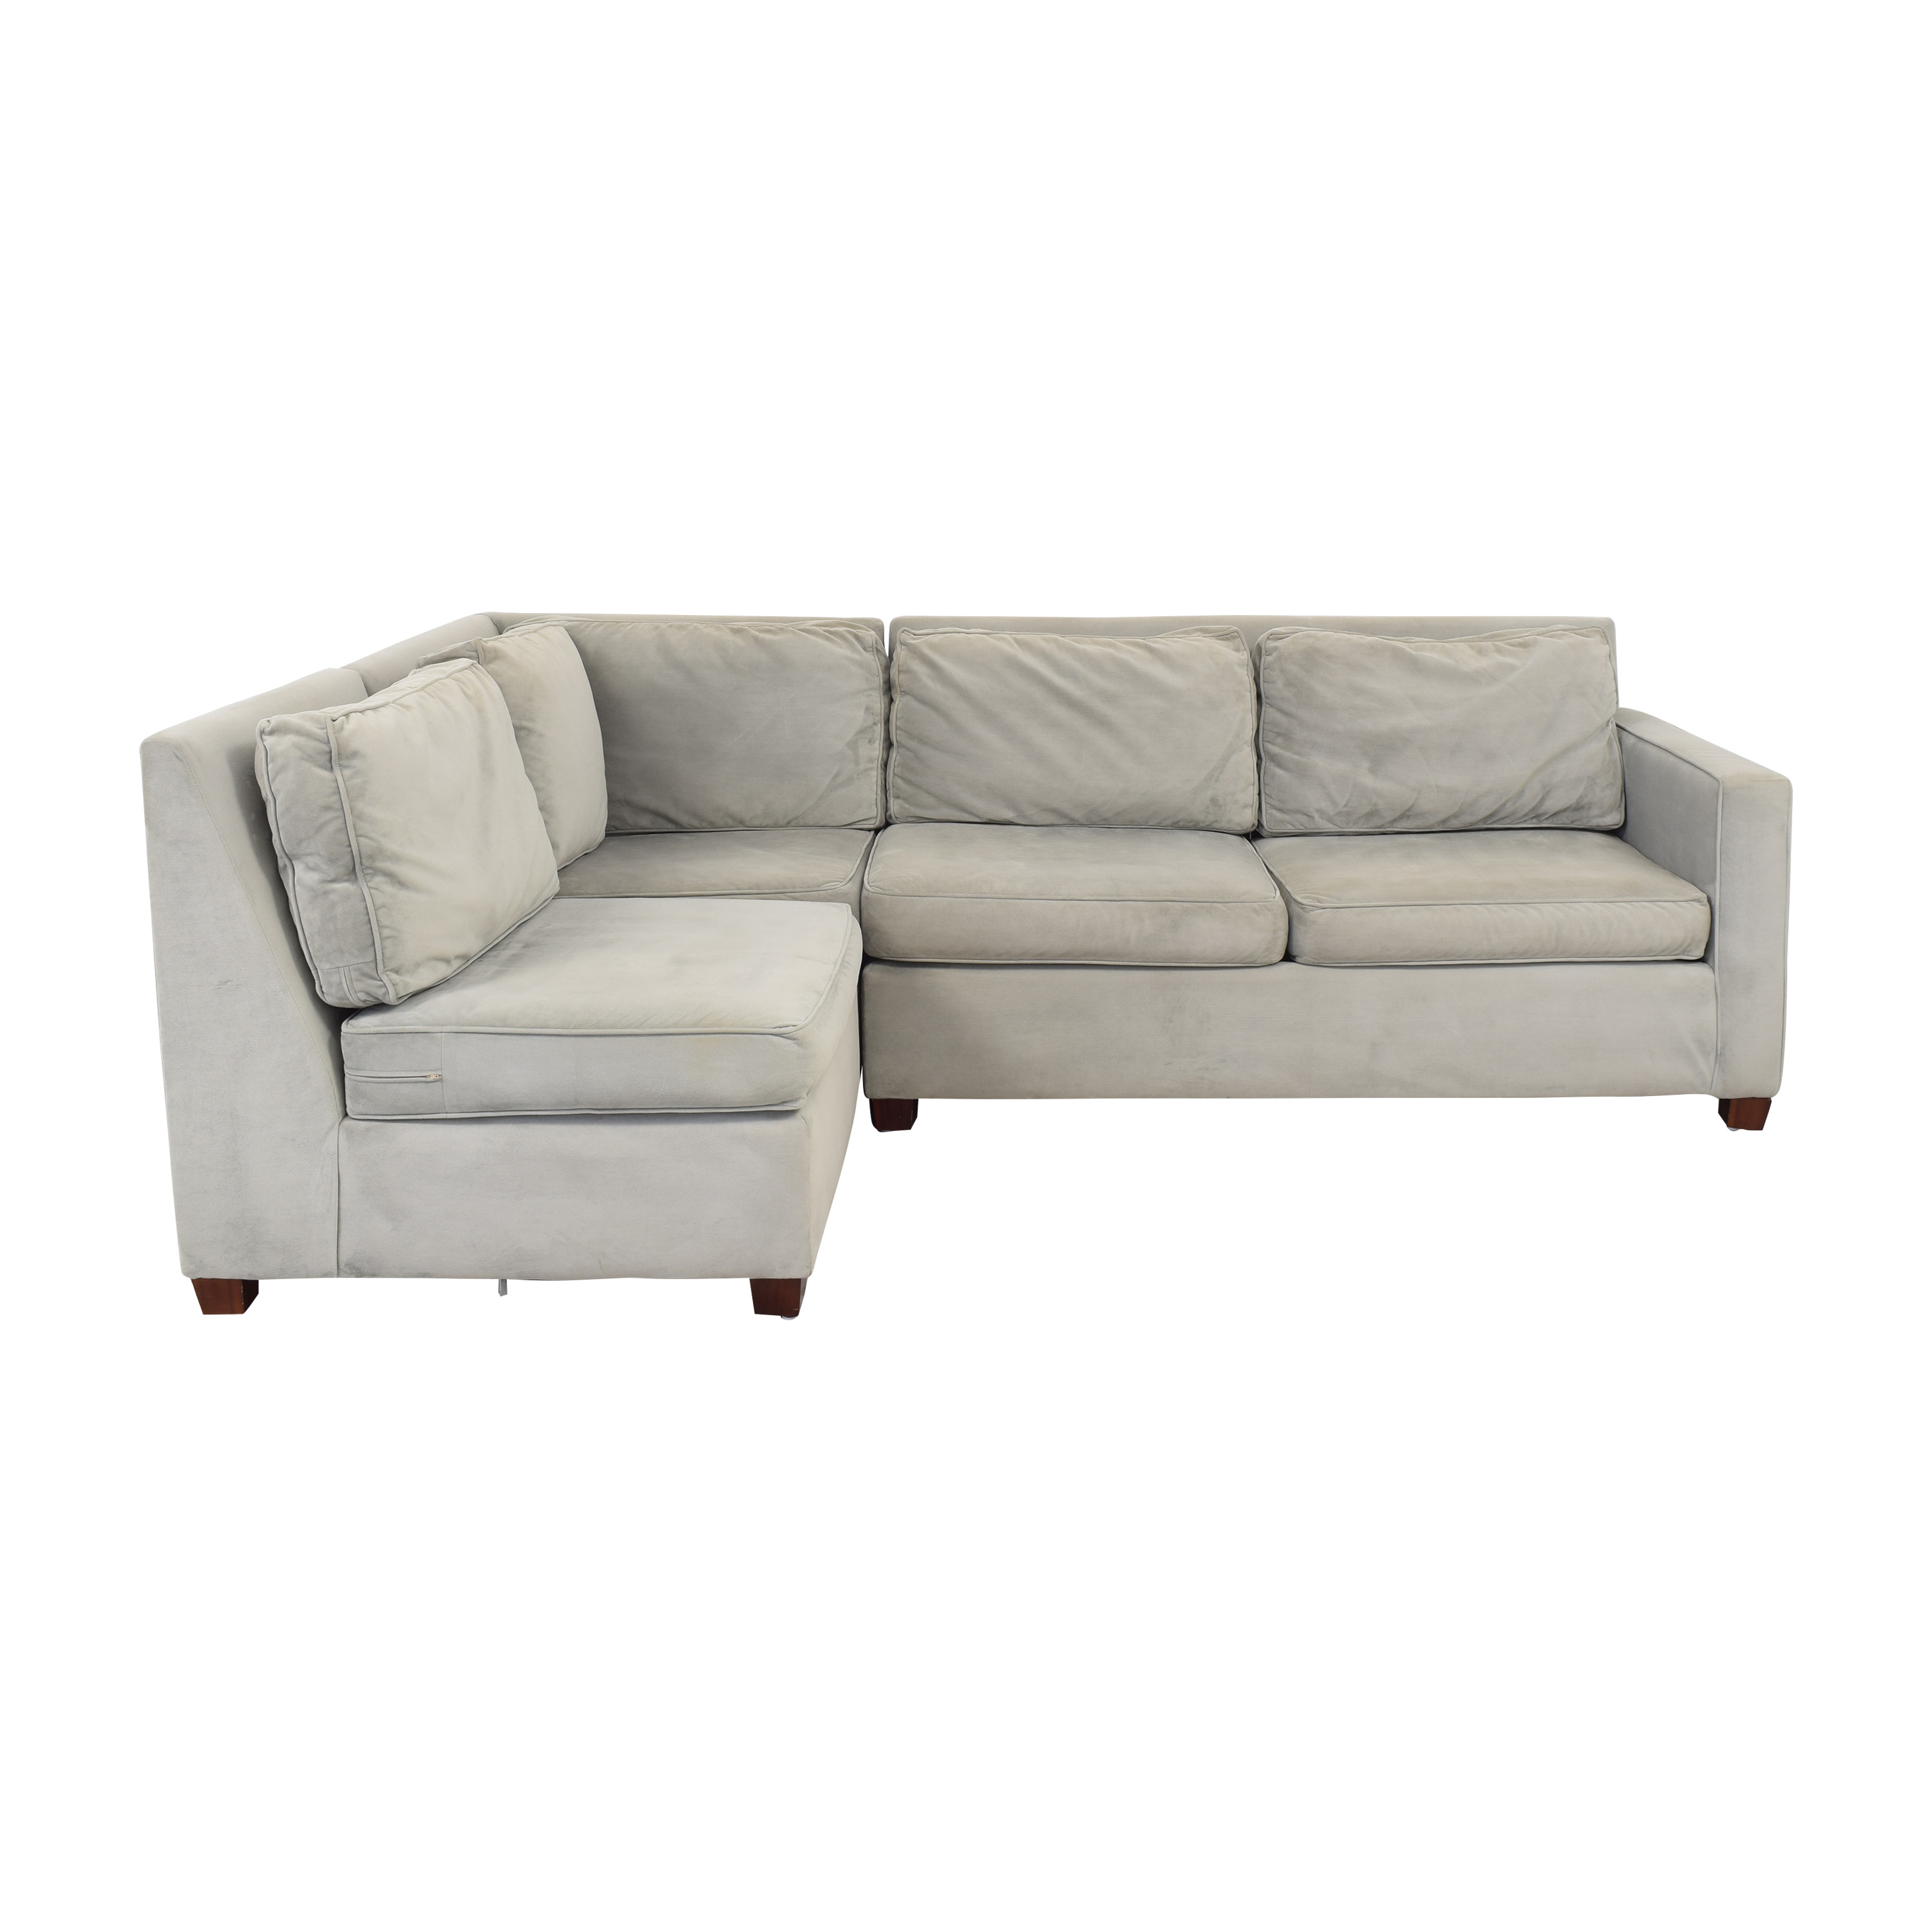 West Elm West Elm Henry Sectional Sofa used